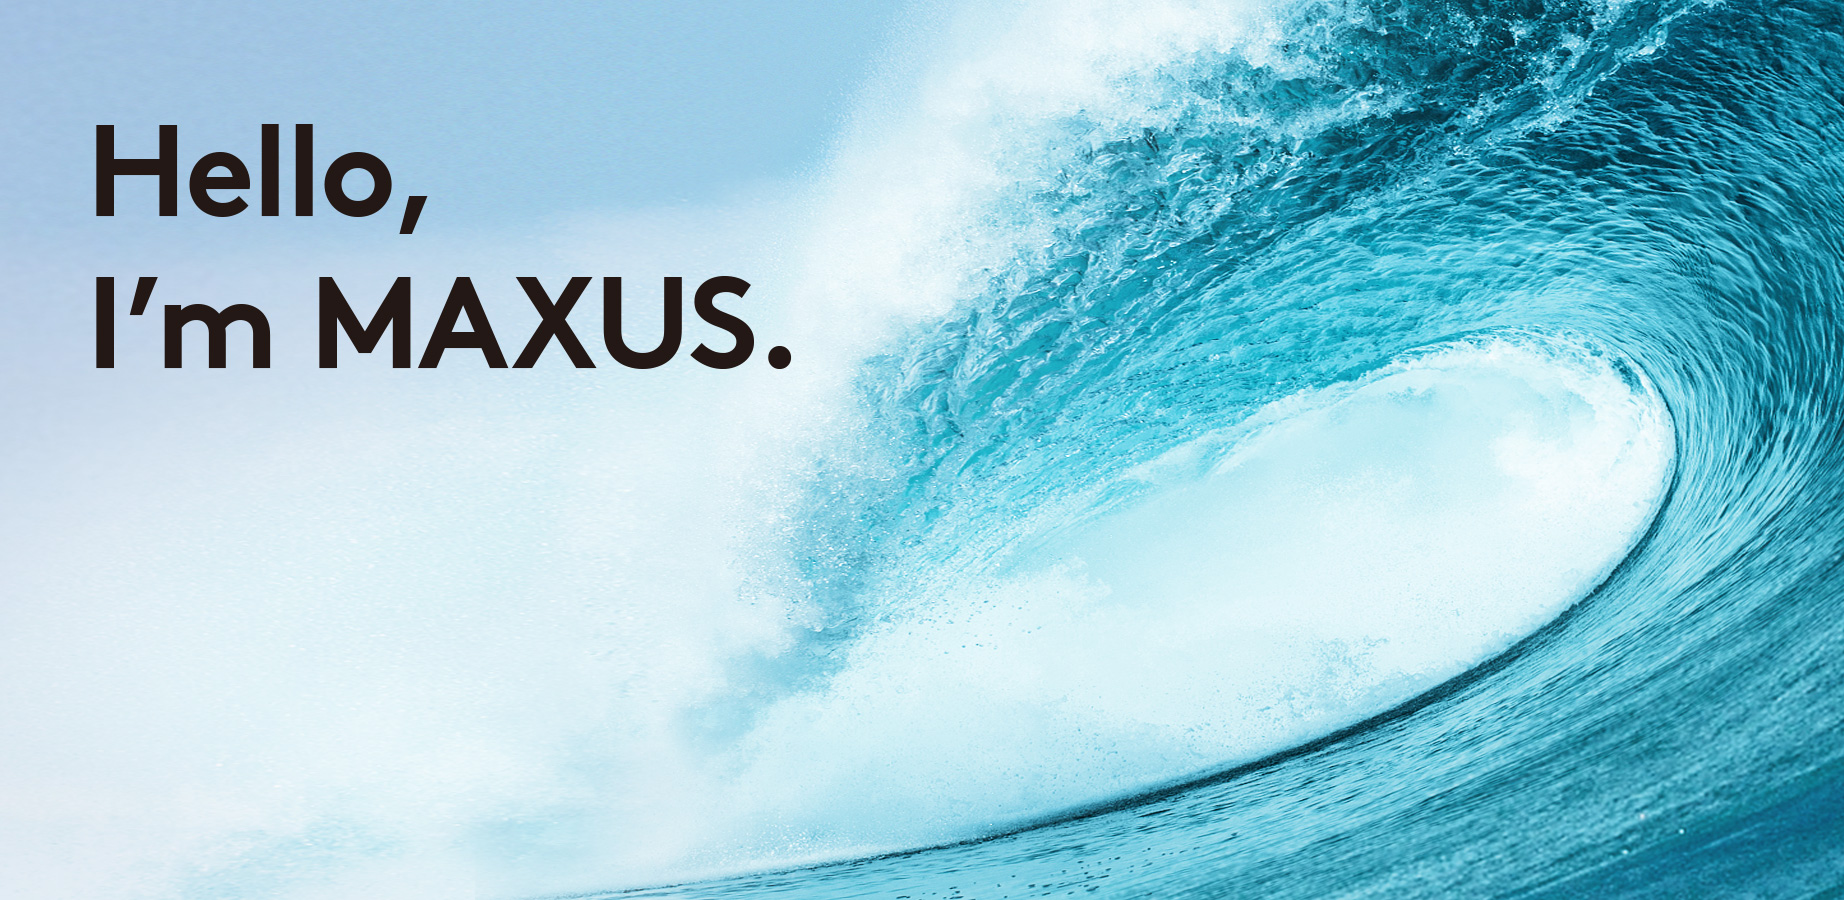 HELLO , I AM MAXUS.